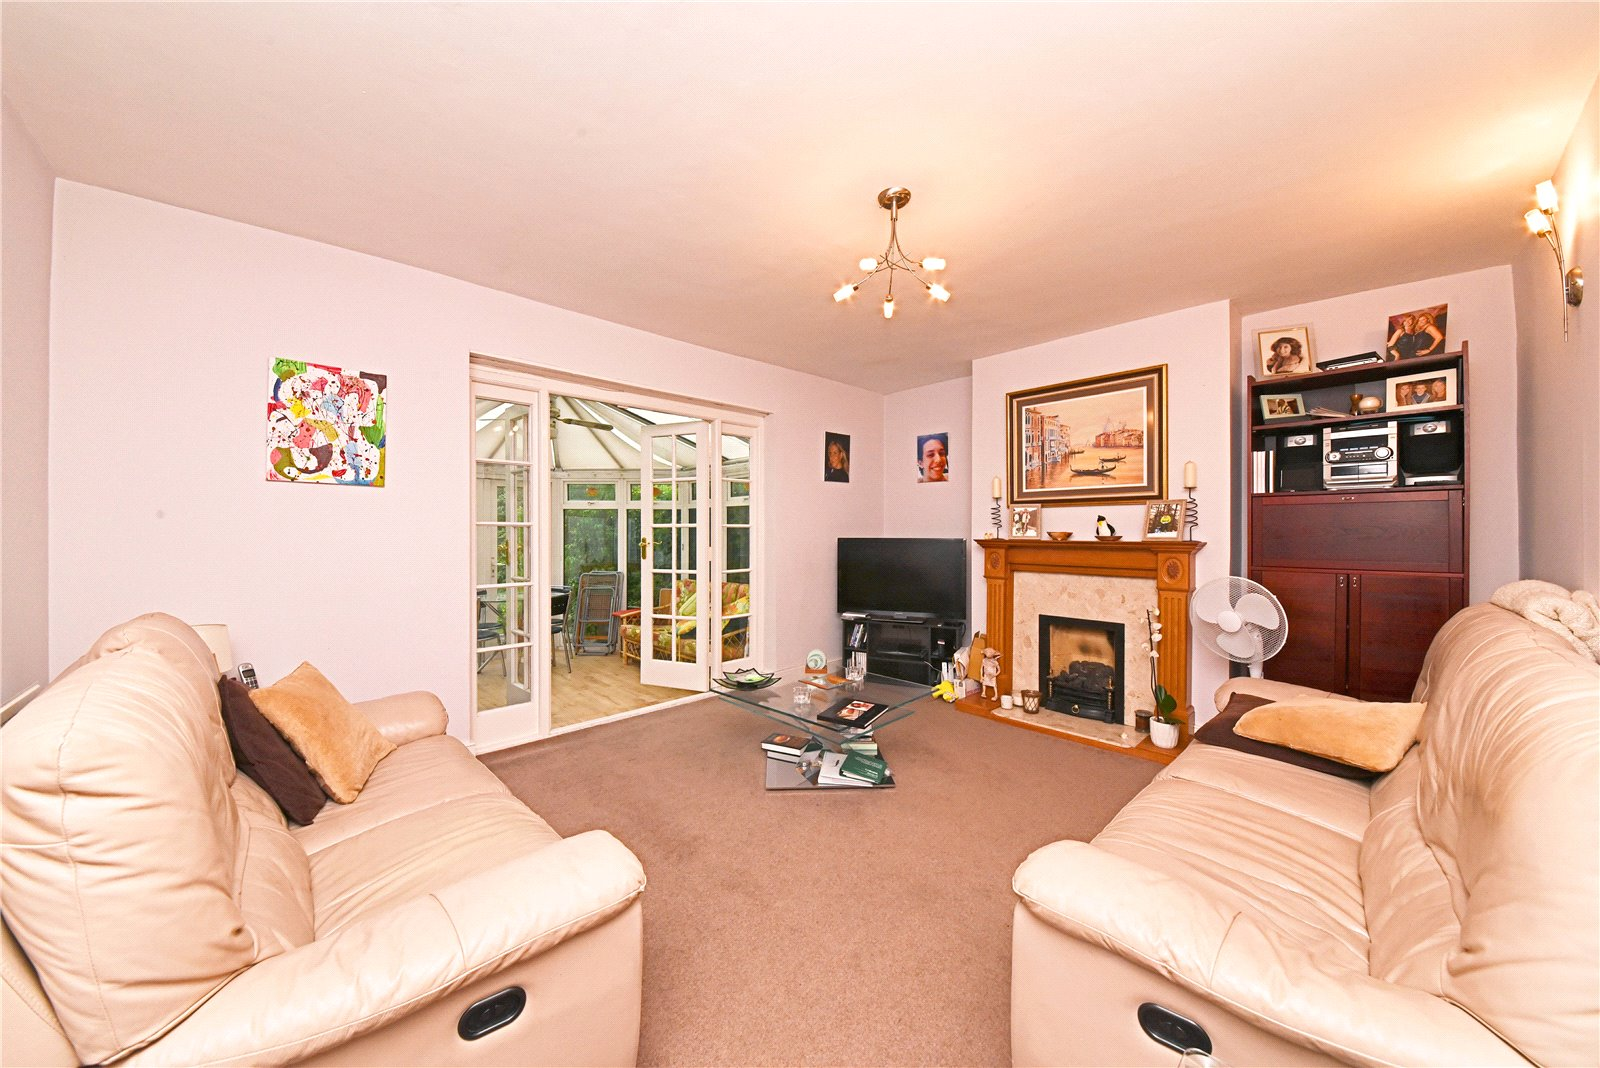 5 bed house for sale in Southgate, N14 4PX  - Property Image 4